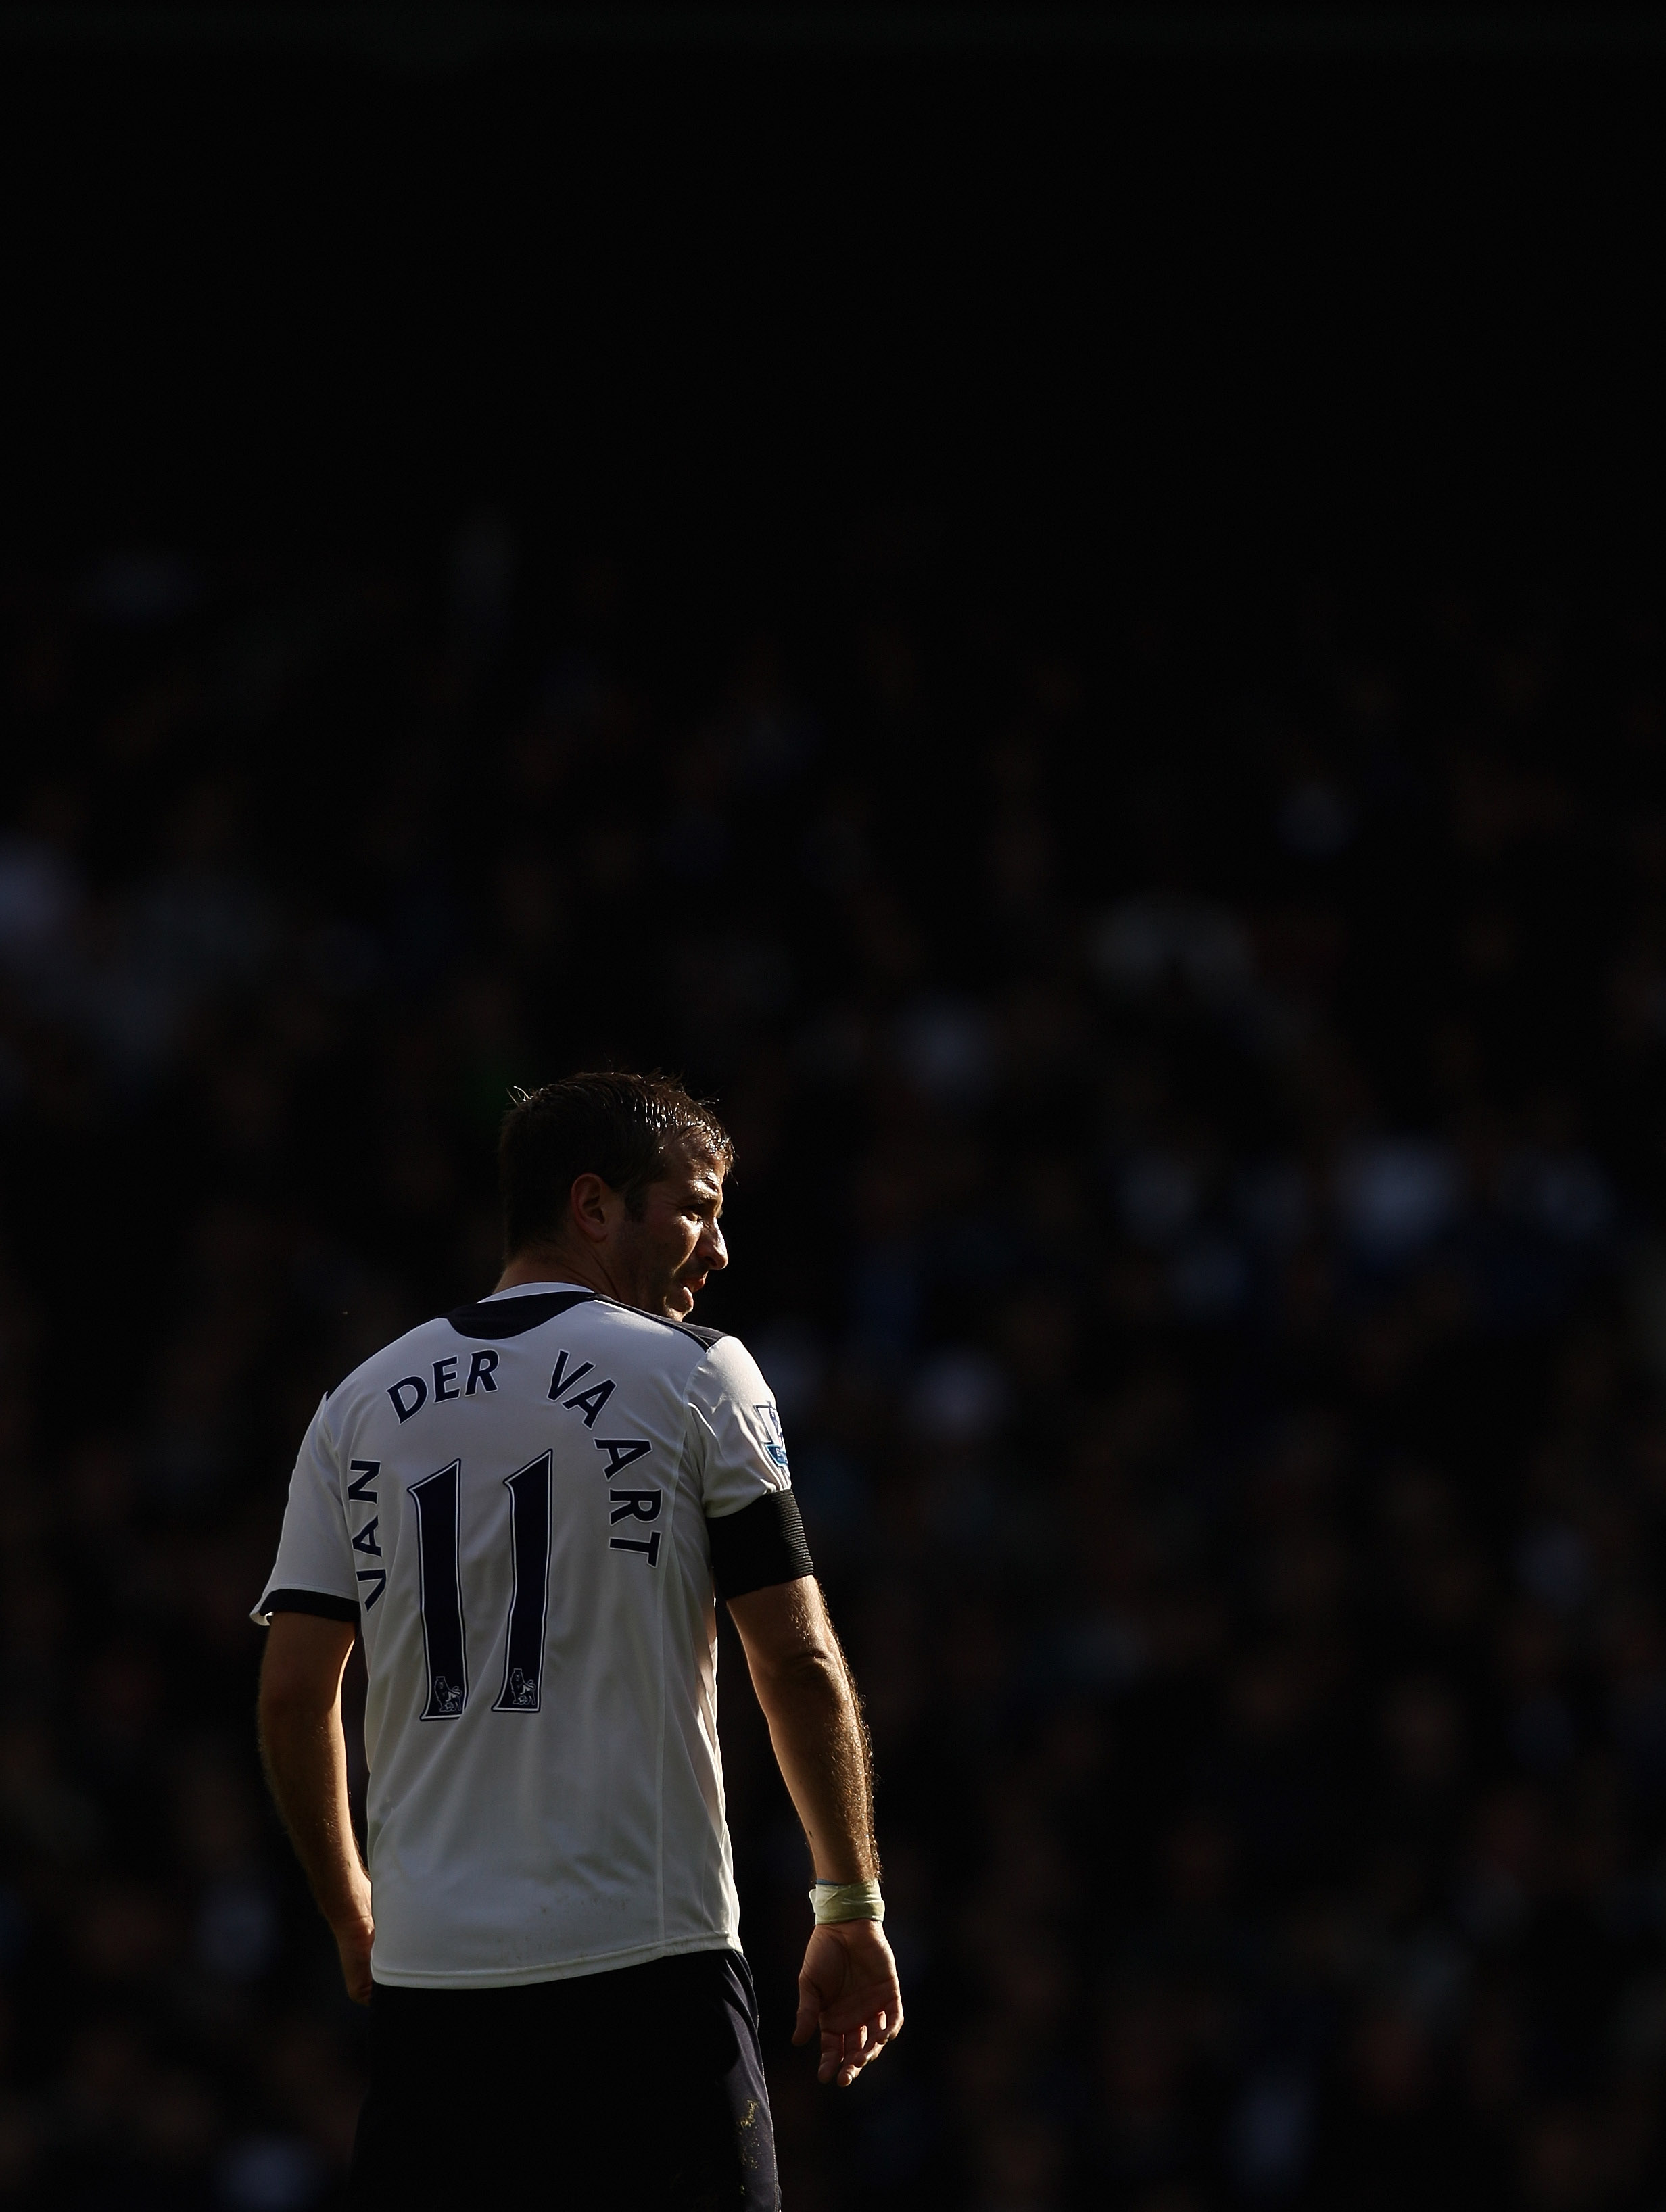 LONDON, ENGLAND - OCTOBER 23:  Rafael van der Vaart of Tottenham in action during the Barclays Premier League match between Tottenham Hotspur and Everton at White Hart Lane on October 23, 2010 in London, England.  (Photo by Richard Heathcote/Getty Images)